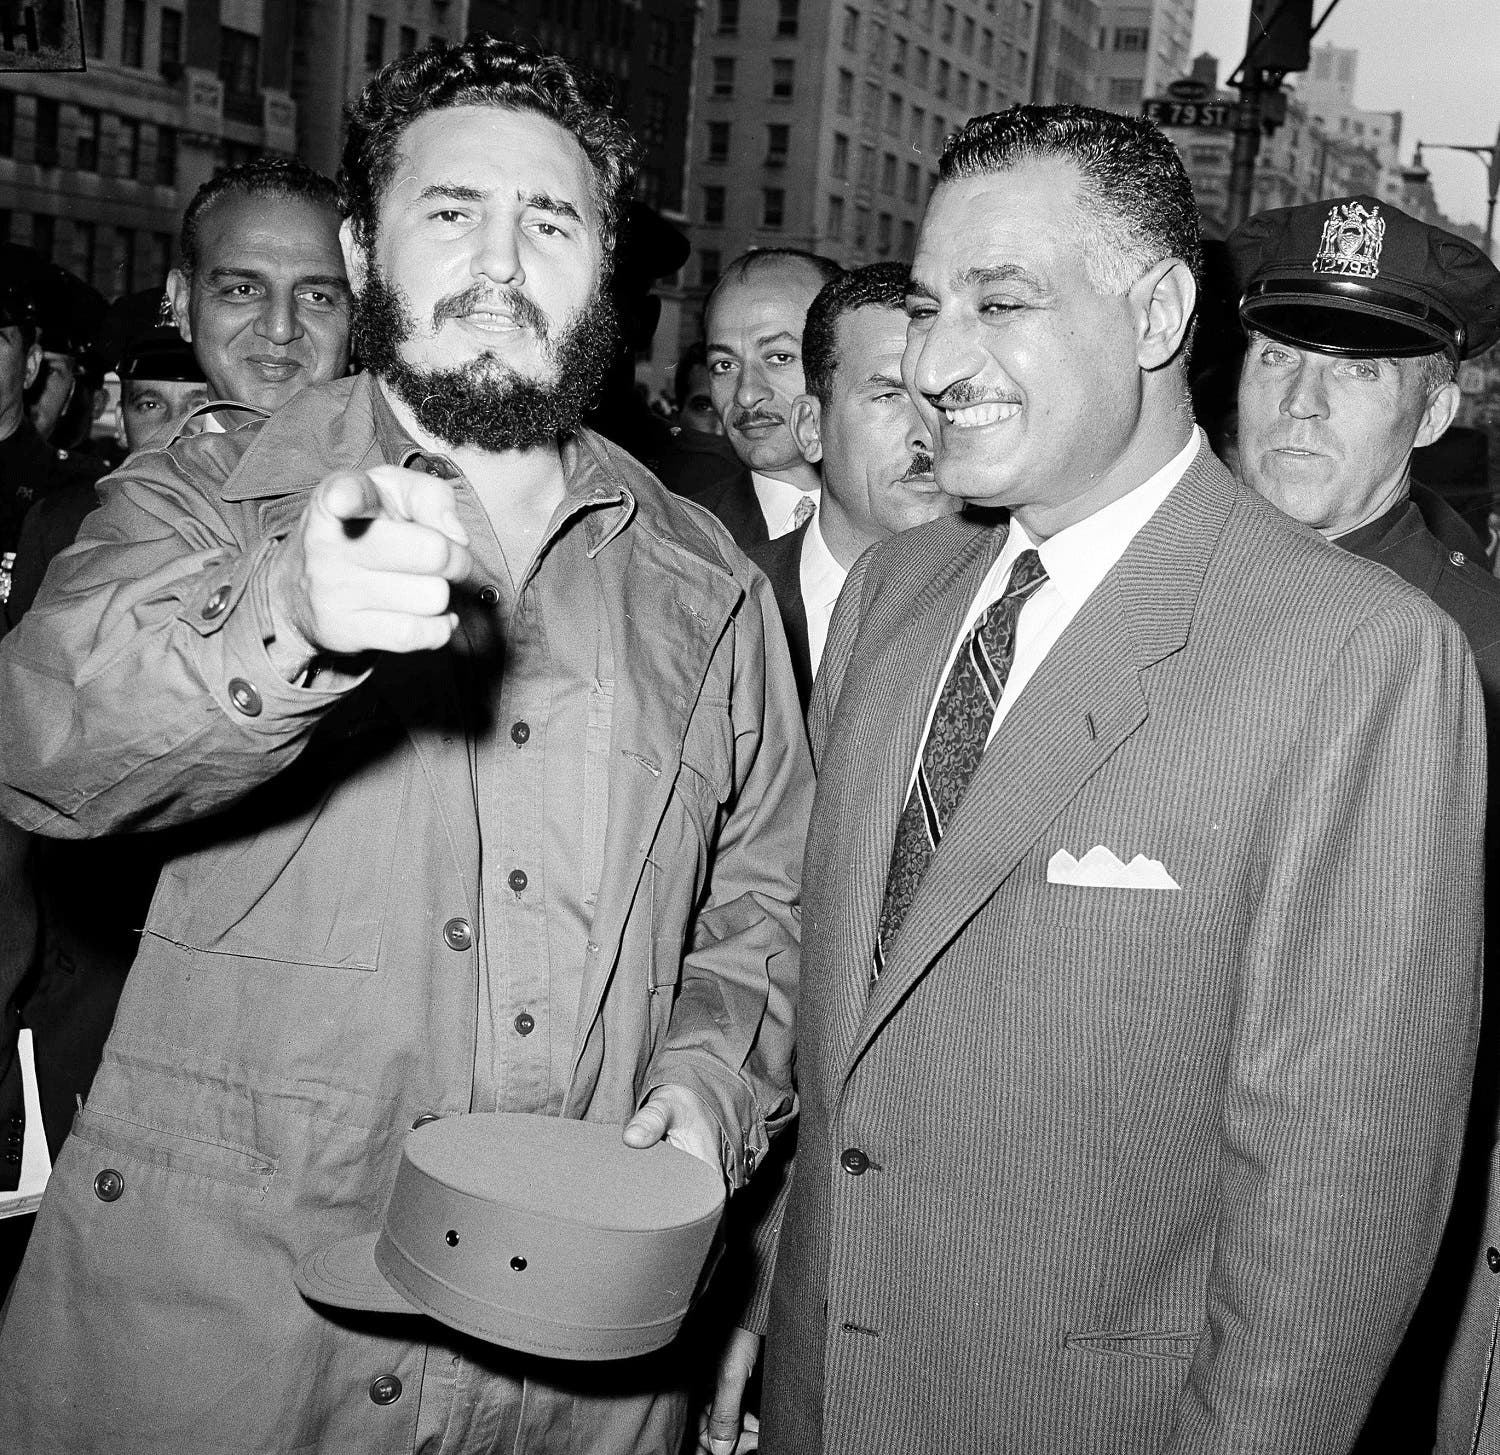 Cuban Prime Minister Fidel Castro, left, and Gamal Abdel Nasser are seen outside the UAR's headquarters in New York, Sept. 28, 1960, after a two-hour conference. (AP Photo/Hans Von Nolde)